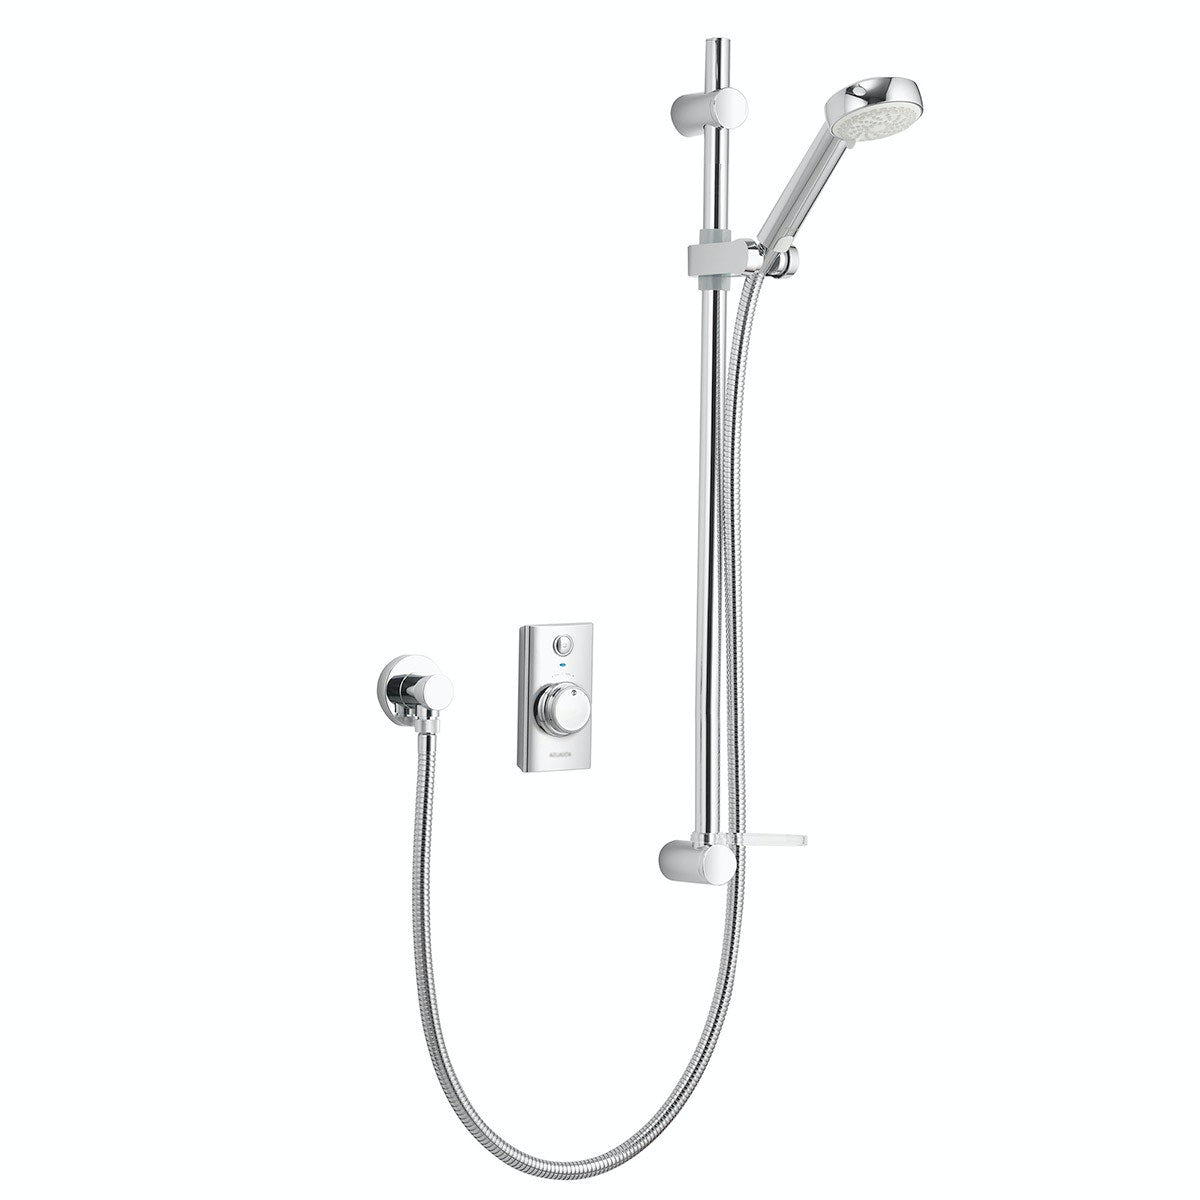 Aqualisa visage concealed digital shower standard